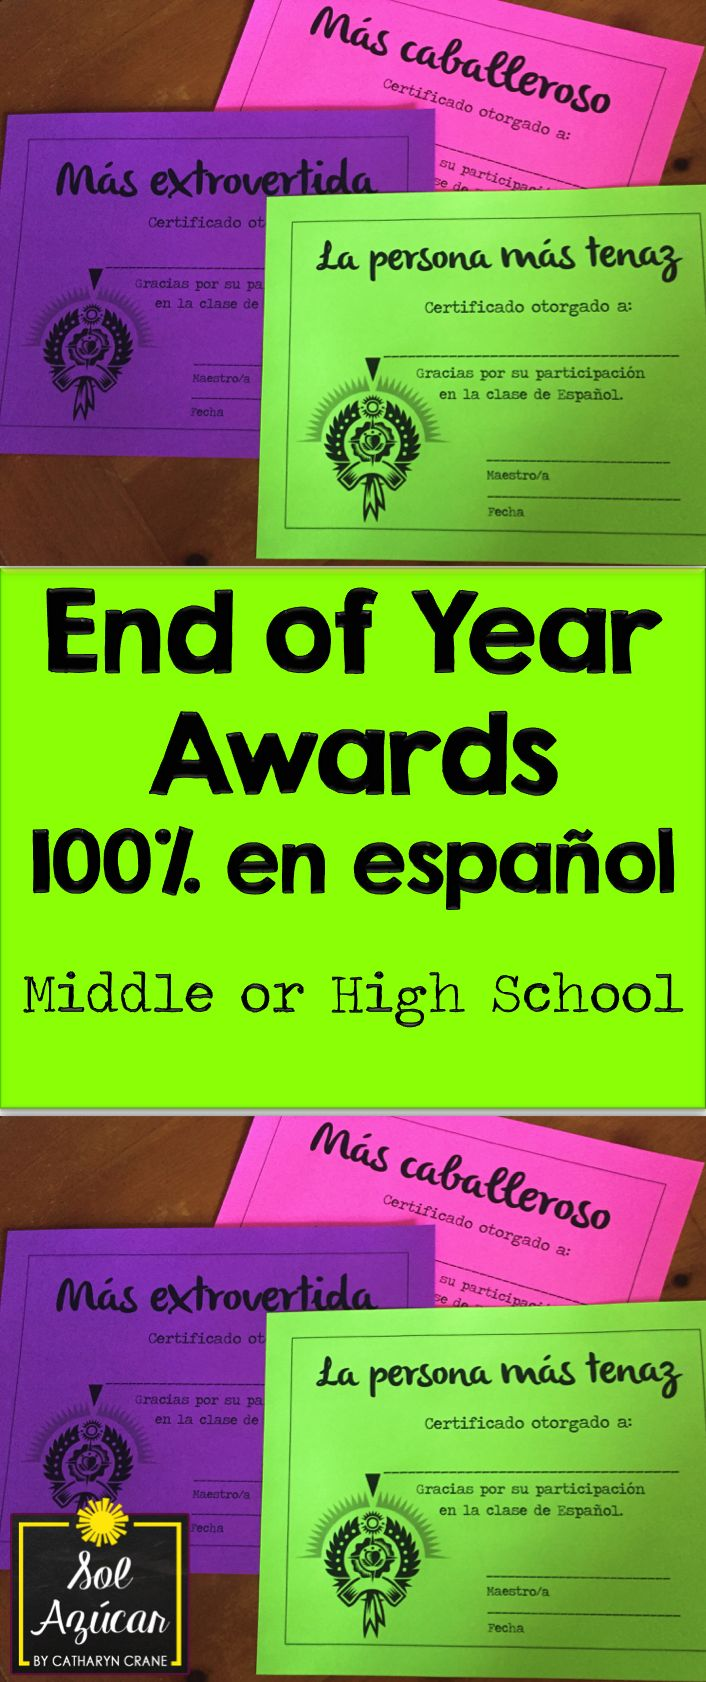 Spanish awards for the end of the year - Spanish superlatives - For intermediate and advanced middle and high school Spanish students - By Sol Azúcar